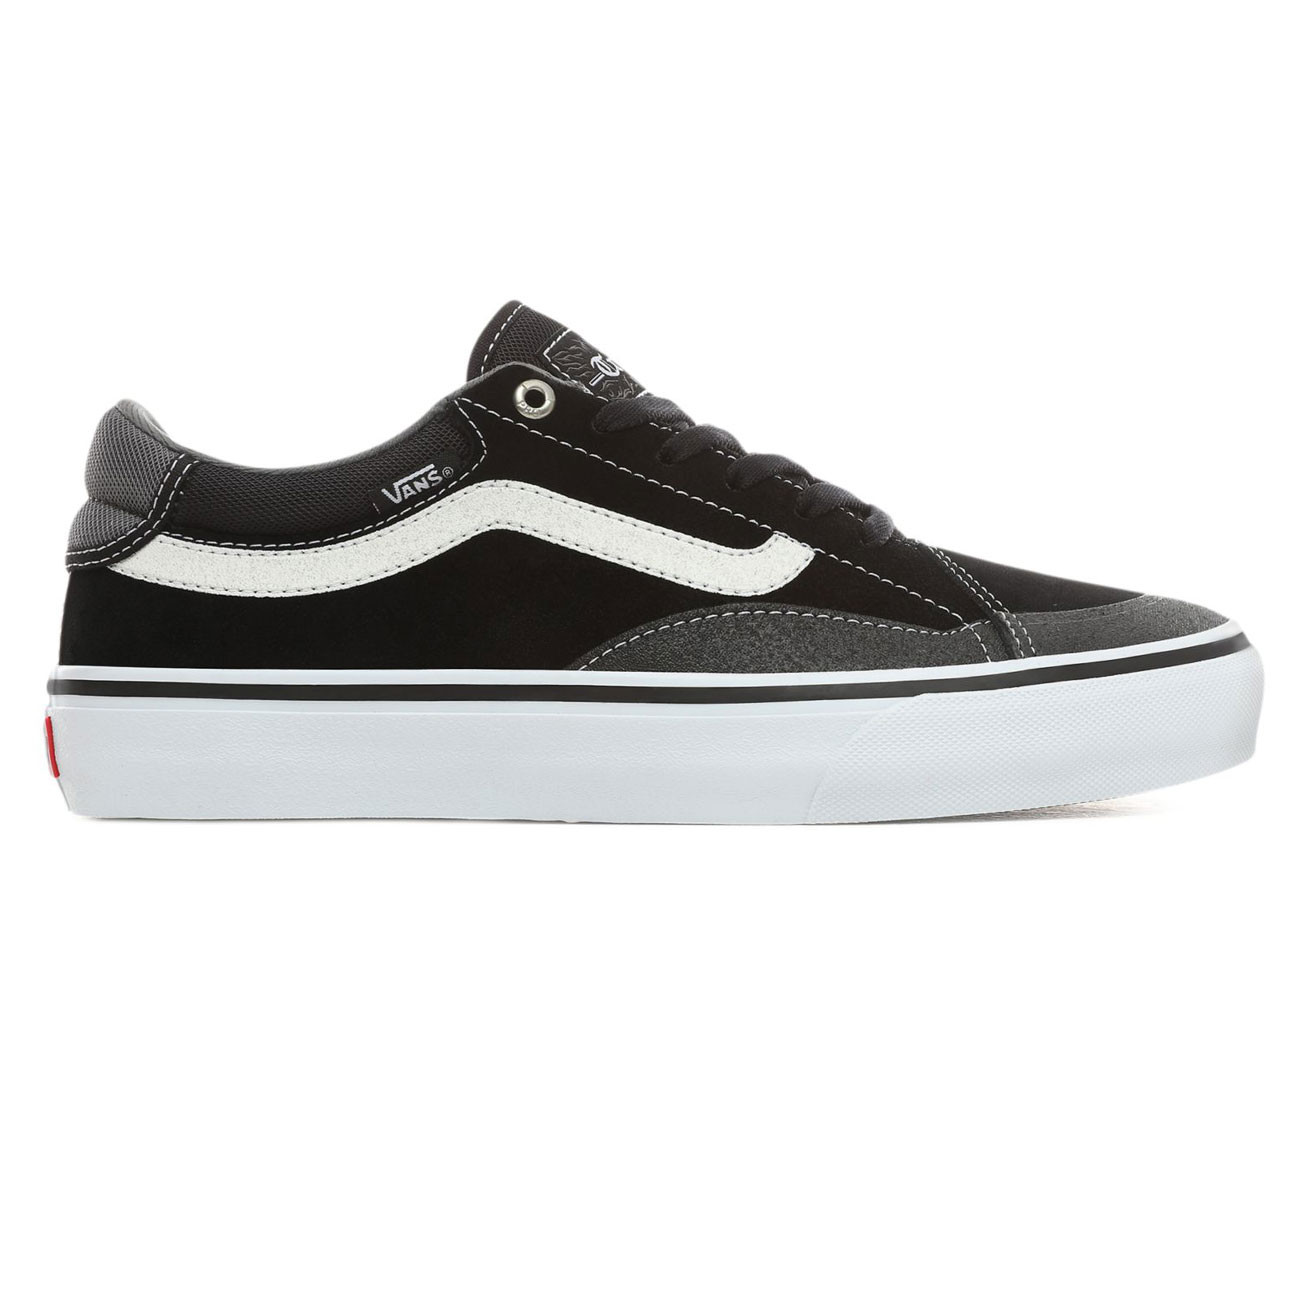 Tenisky Vans TNT Advanced Prototype